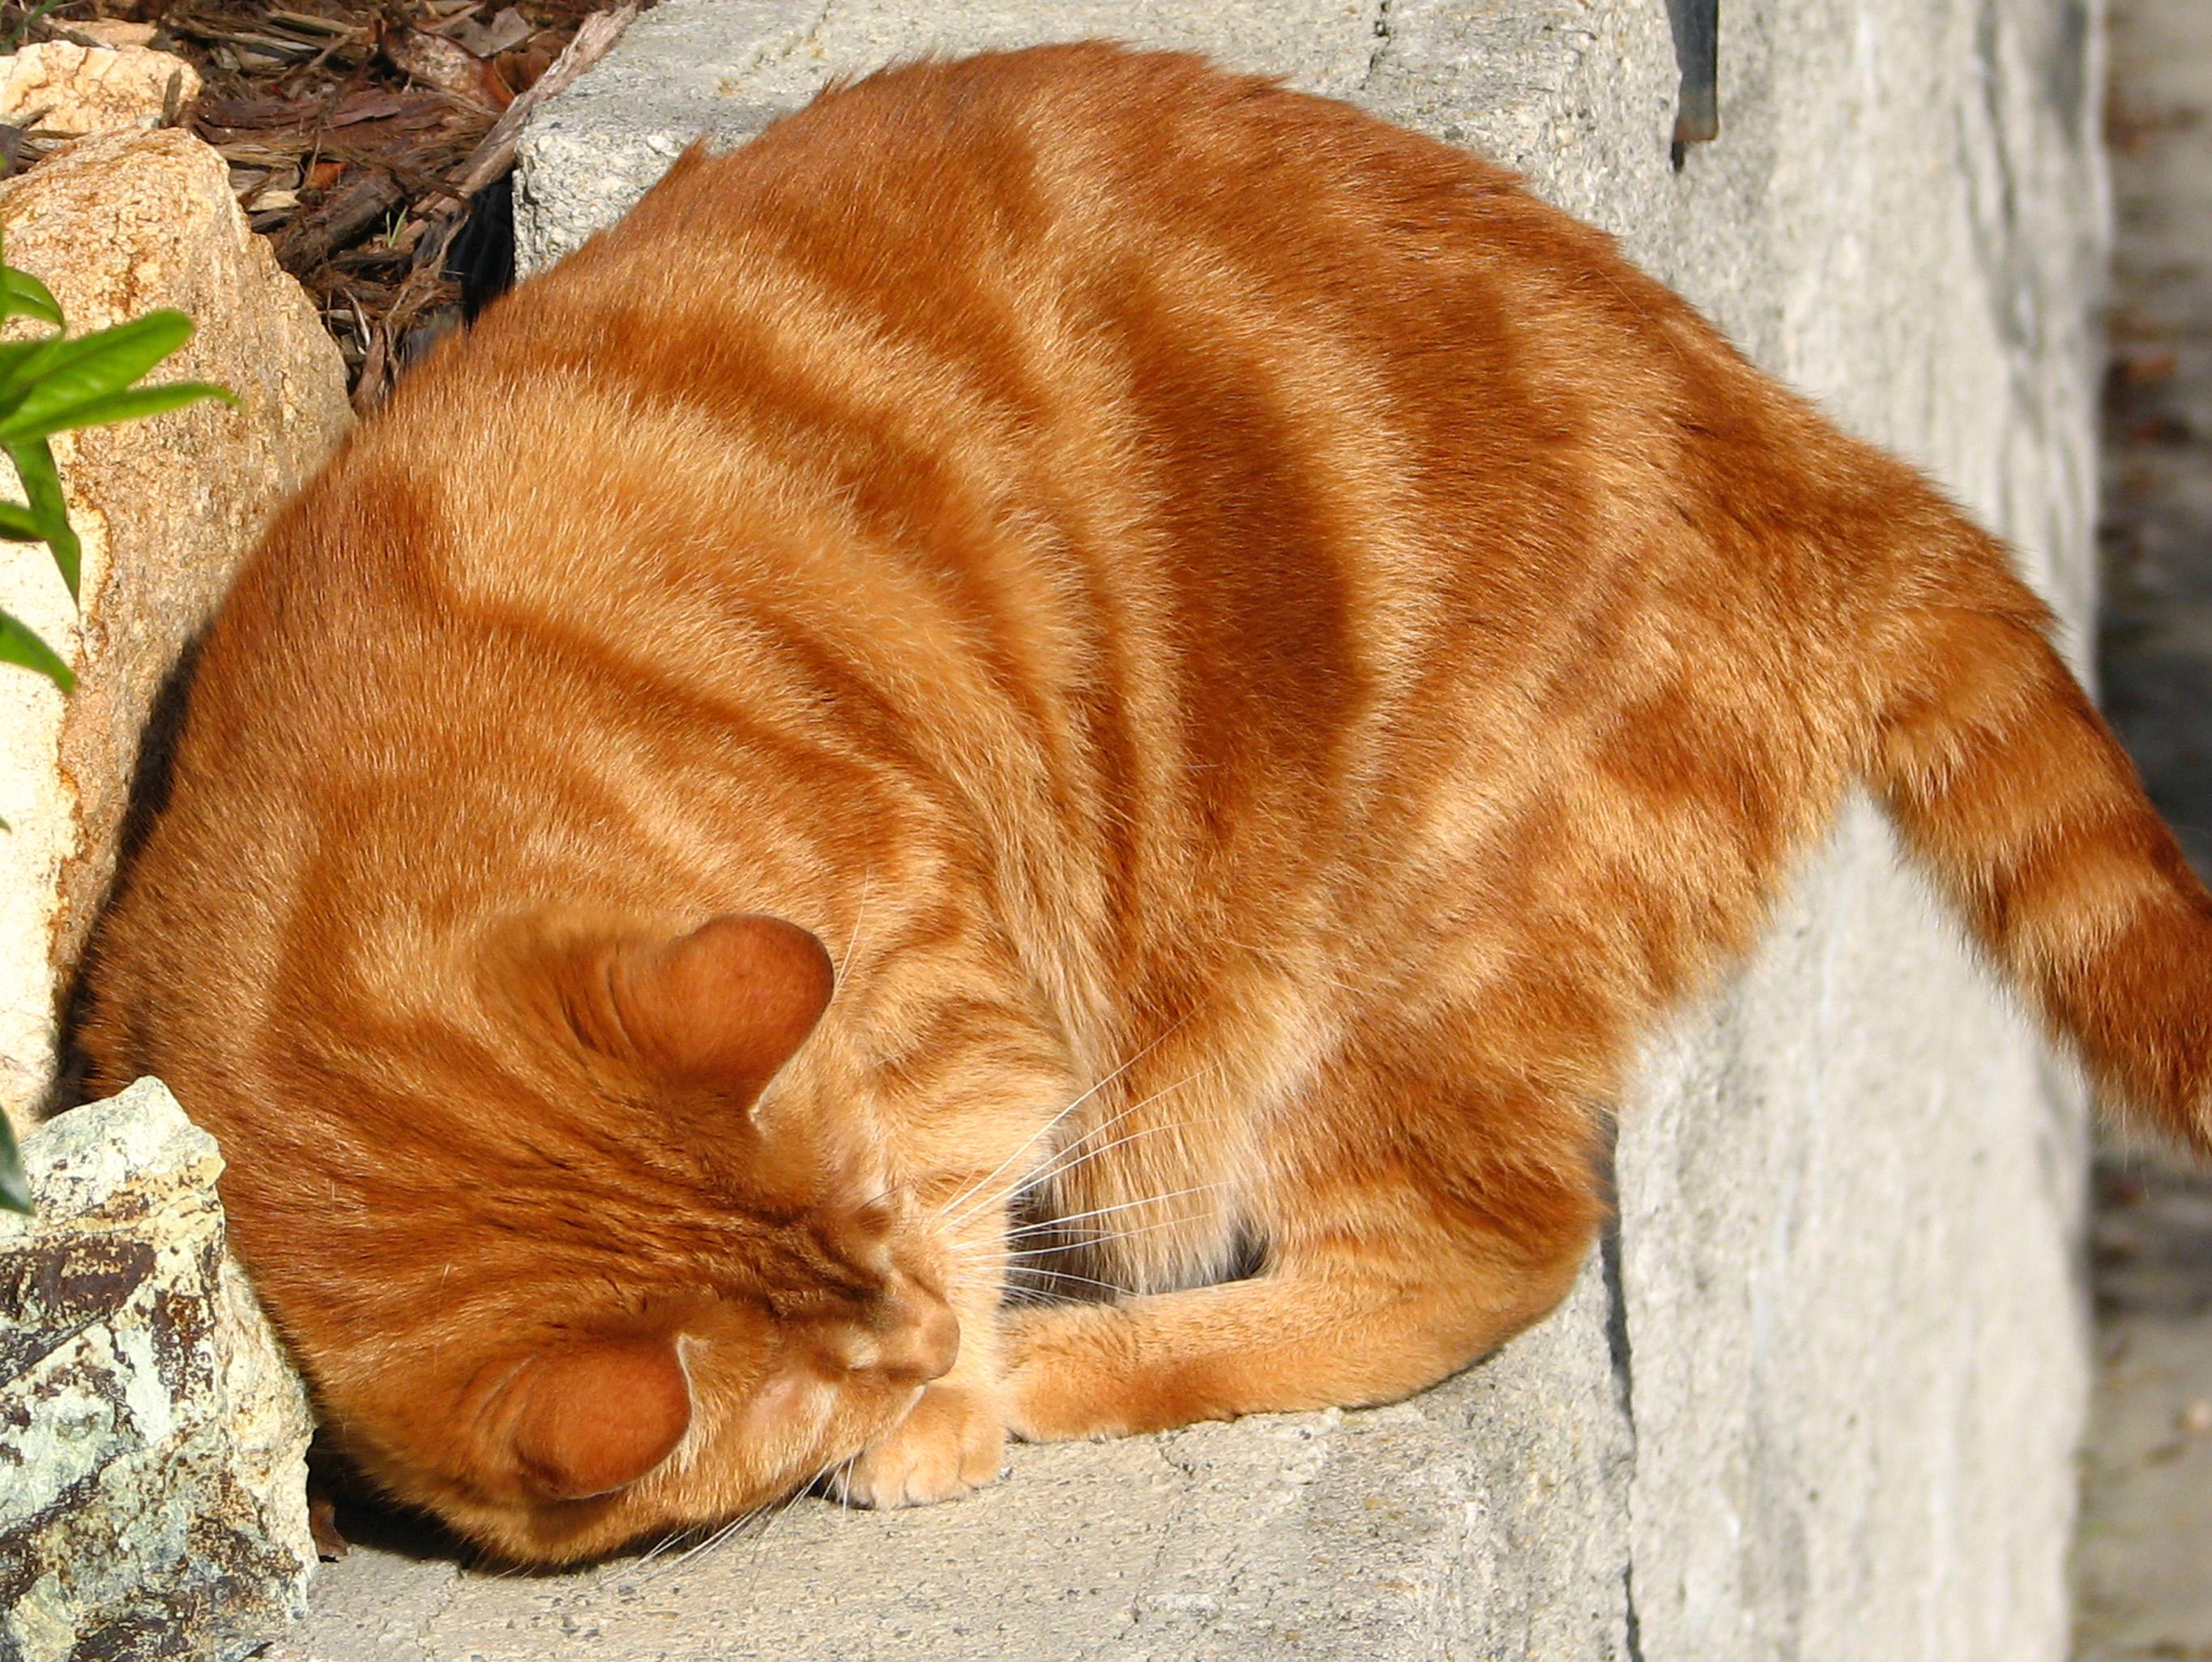 Ginger tabby curled up on a rock outside, sleeping.